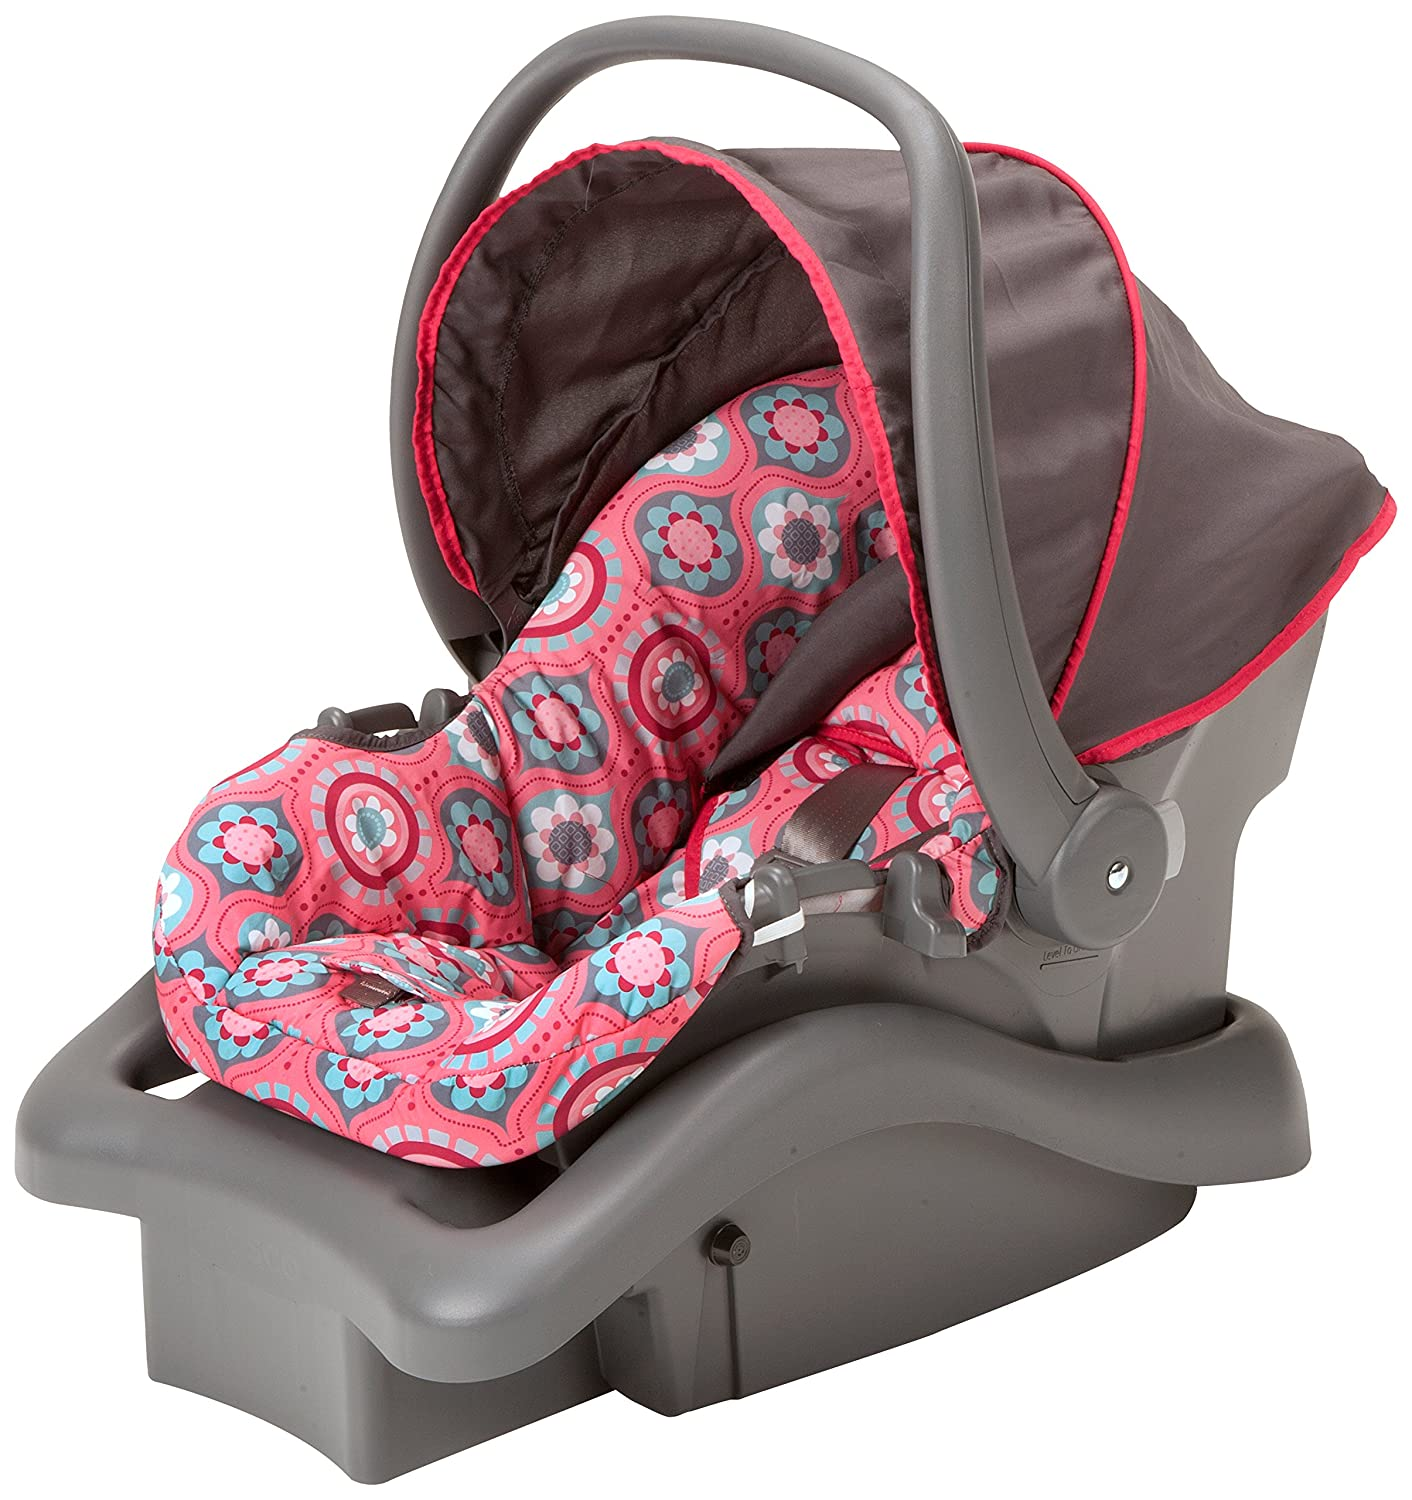 Amazon.com : Cosco Light N Comfy DX, Posey Pop : Baby